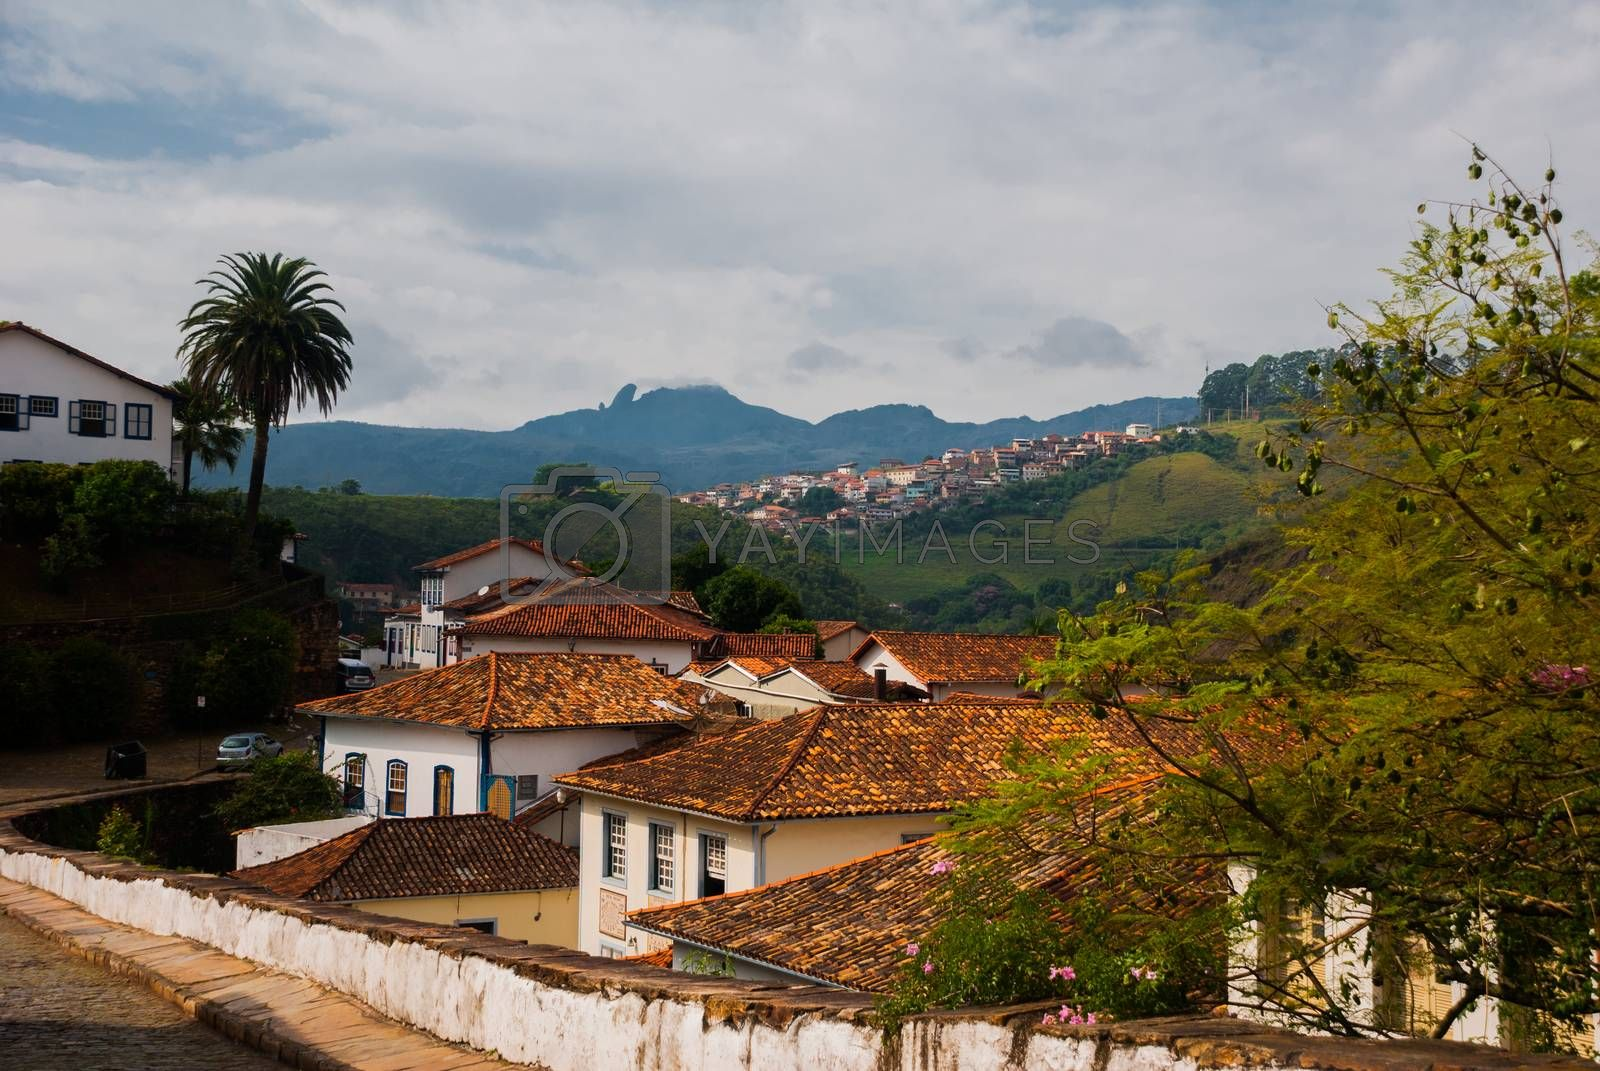 OURO PRETO, MINAS GERAIS, BRAZIL - APRIL 2019: landscape with a beautiful view of the colonial houses on stare street in Ouro Preto. UNESCO world heritage city center of Ouro Preto in Brazil